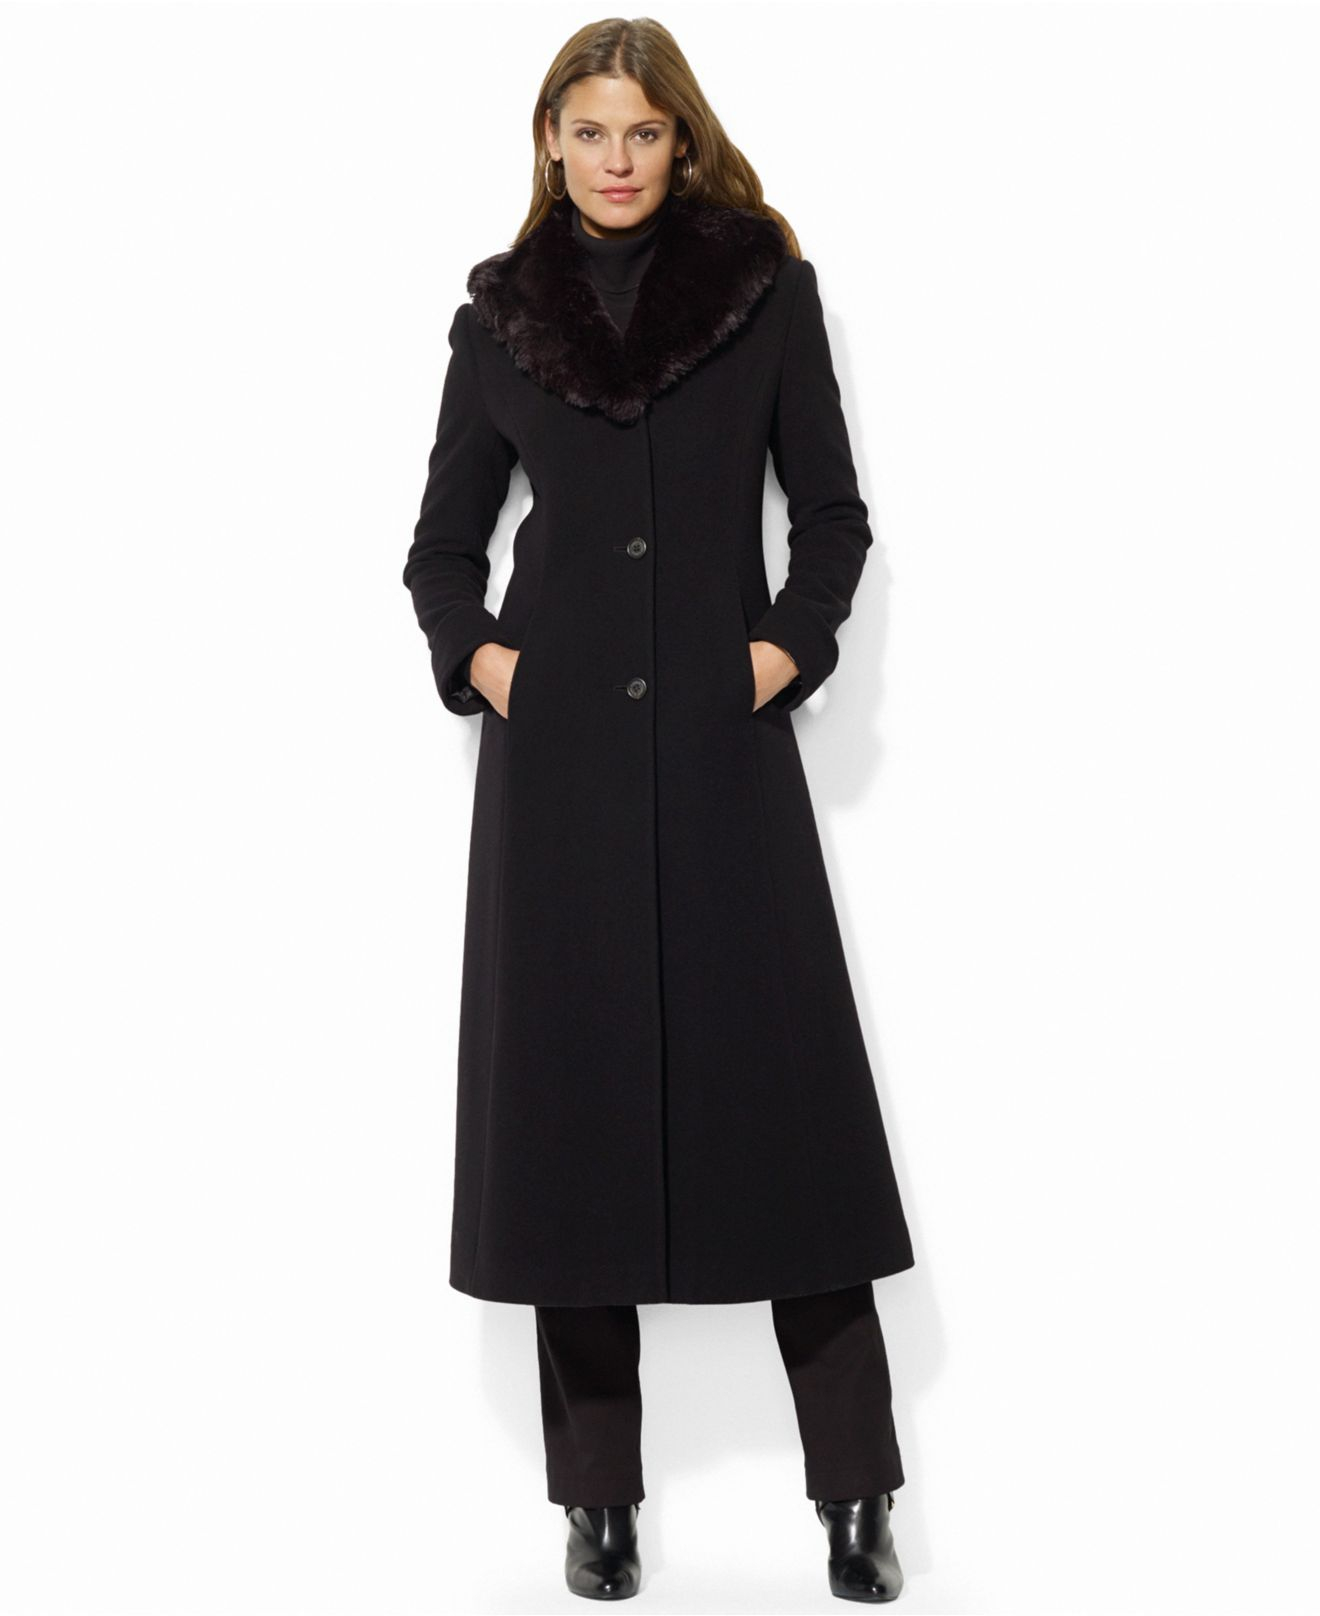 Lauren by ralph lauren Wool-Cashmere-Blend Faux-Fur-Collar Maxi